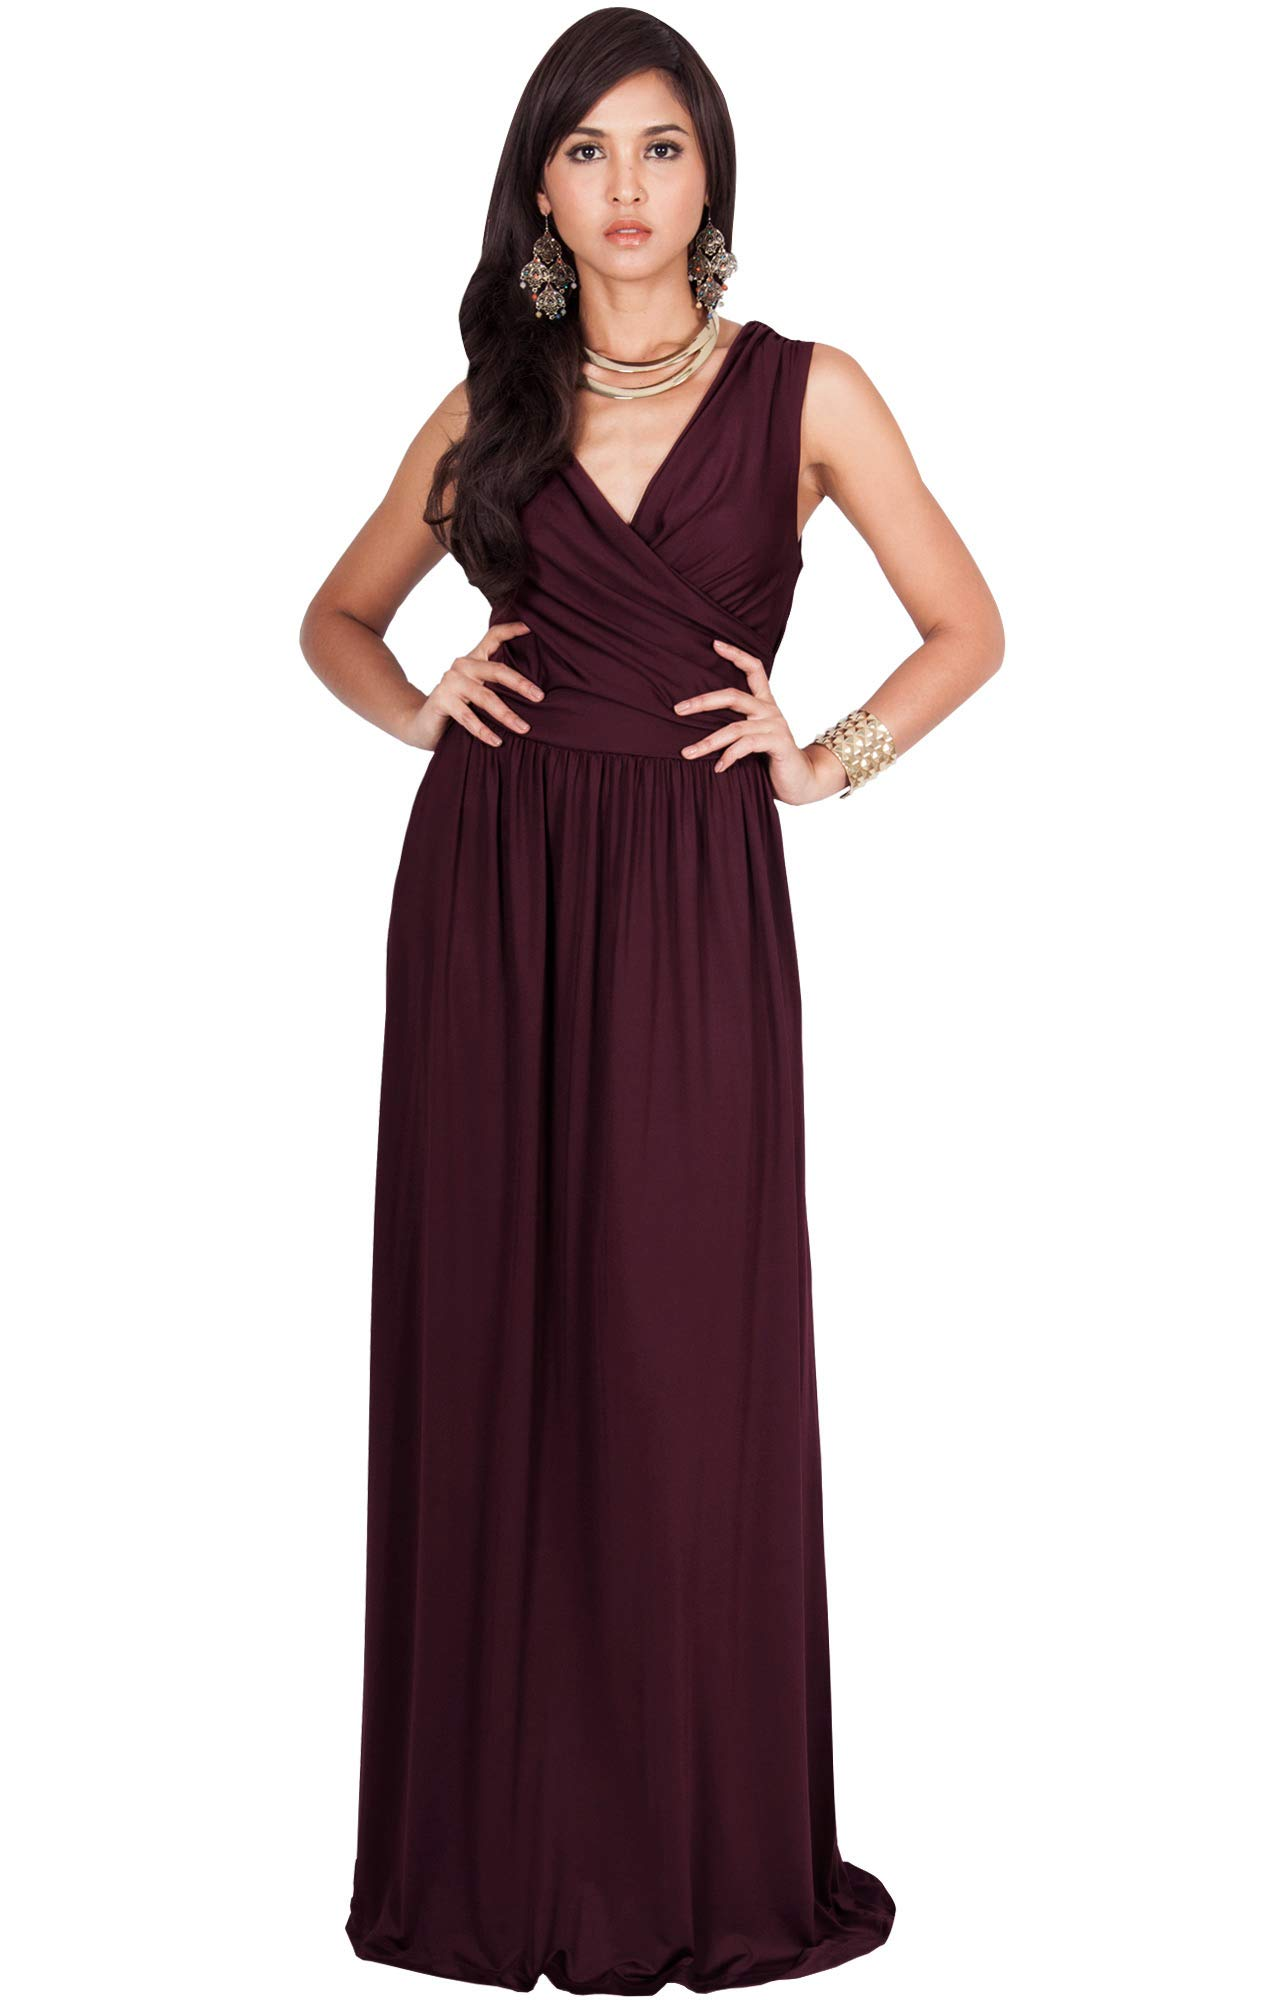 59b152cb6b67 KOH KOH Petite Womens Long Sleeveless Sexy Summer Semi Formal Bridesmaid  Wedding Guest Evening Sundress Sundresses Flowy Gown Gowns Maxi Dress  Dresses